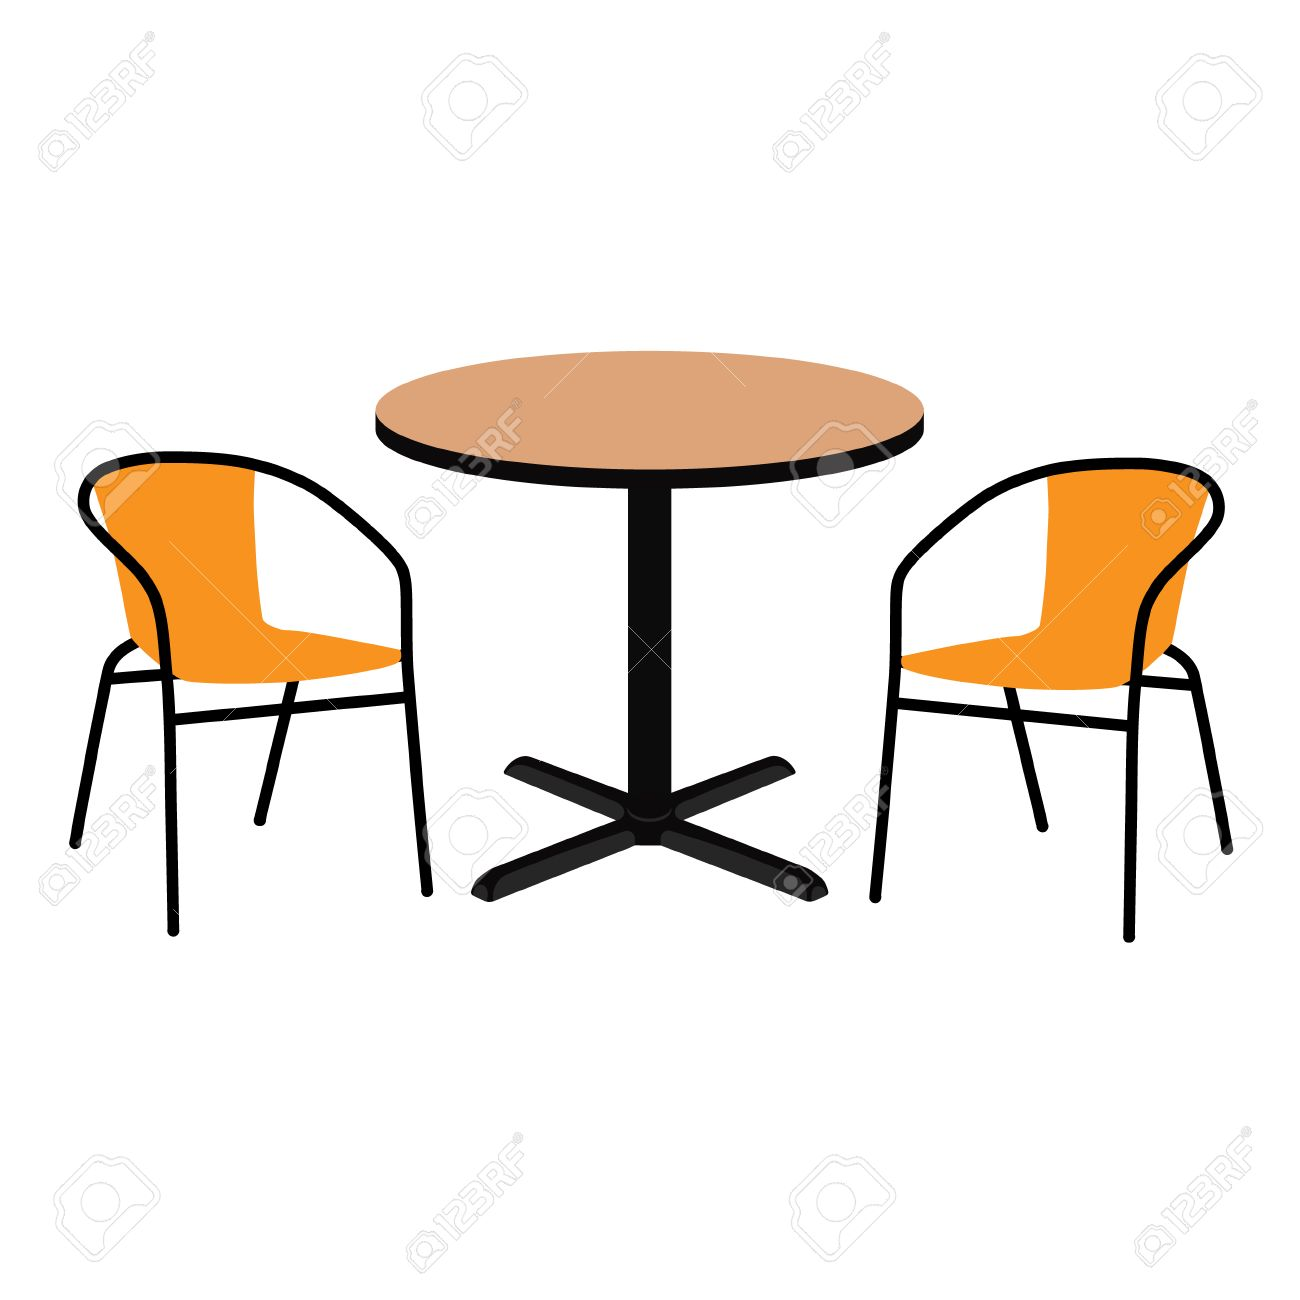 Vector - Vector illustration wooden outdoor table and two chairs. Round table and chairs for cafe restaurant terrace  sc 1 st  123RF.com & Vector Illustration Wooden Outdoor Table And Two Chairs. Round ...